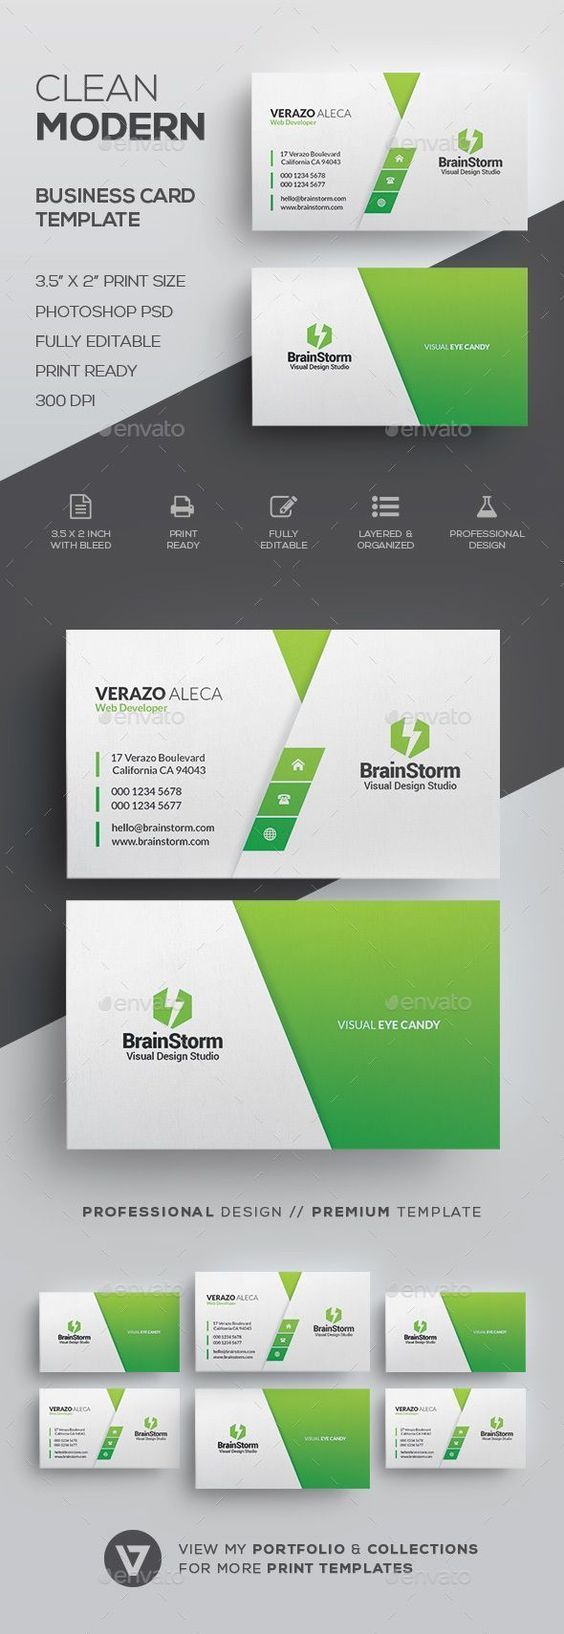 Clean Modern Business Card Template By Verazo Need More High Quality Business Ca Modern Business Cards Business Card Inspiration Buy Business Cards